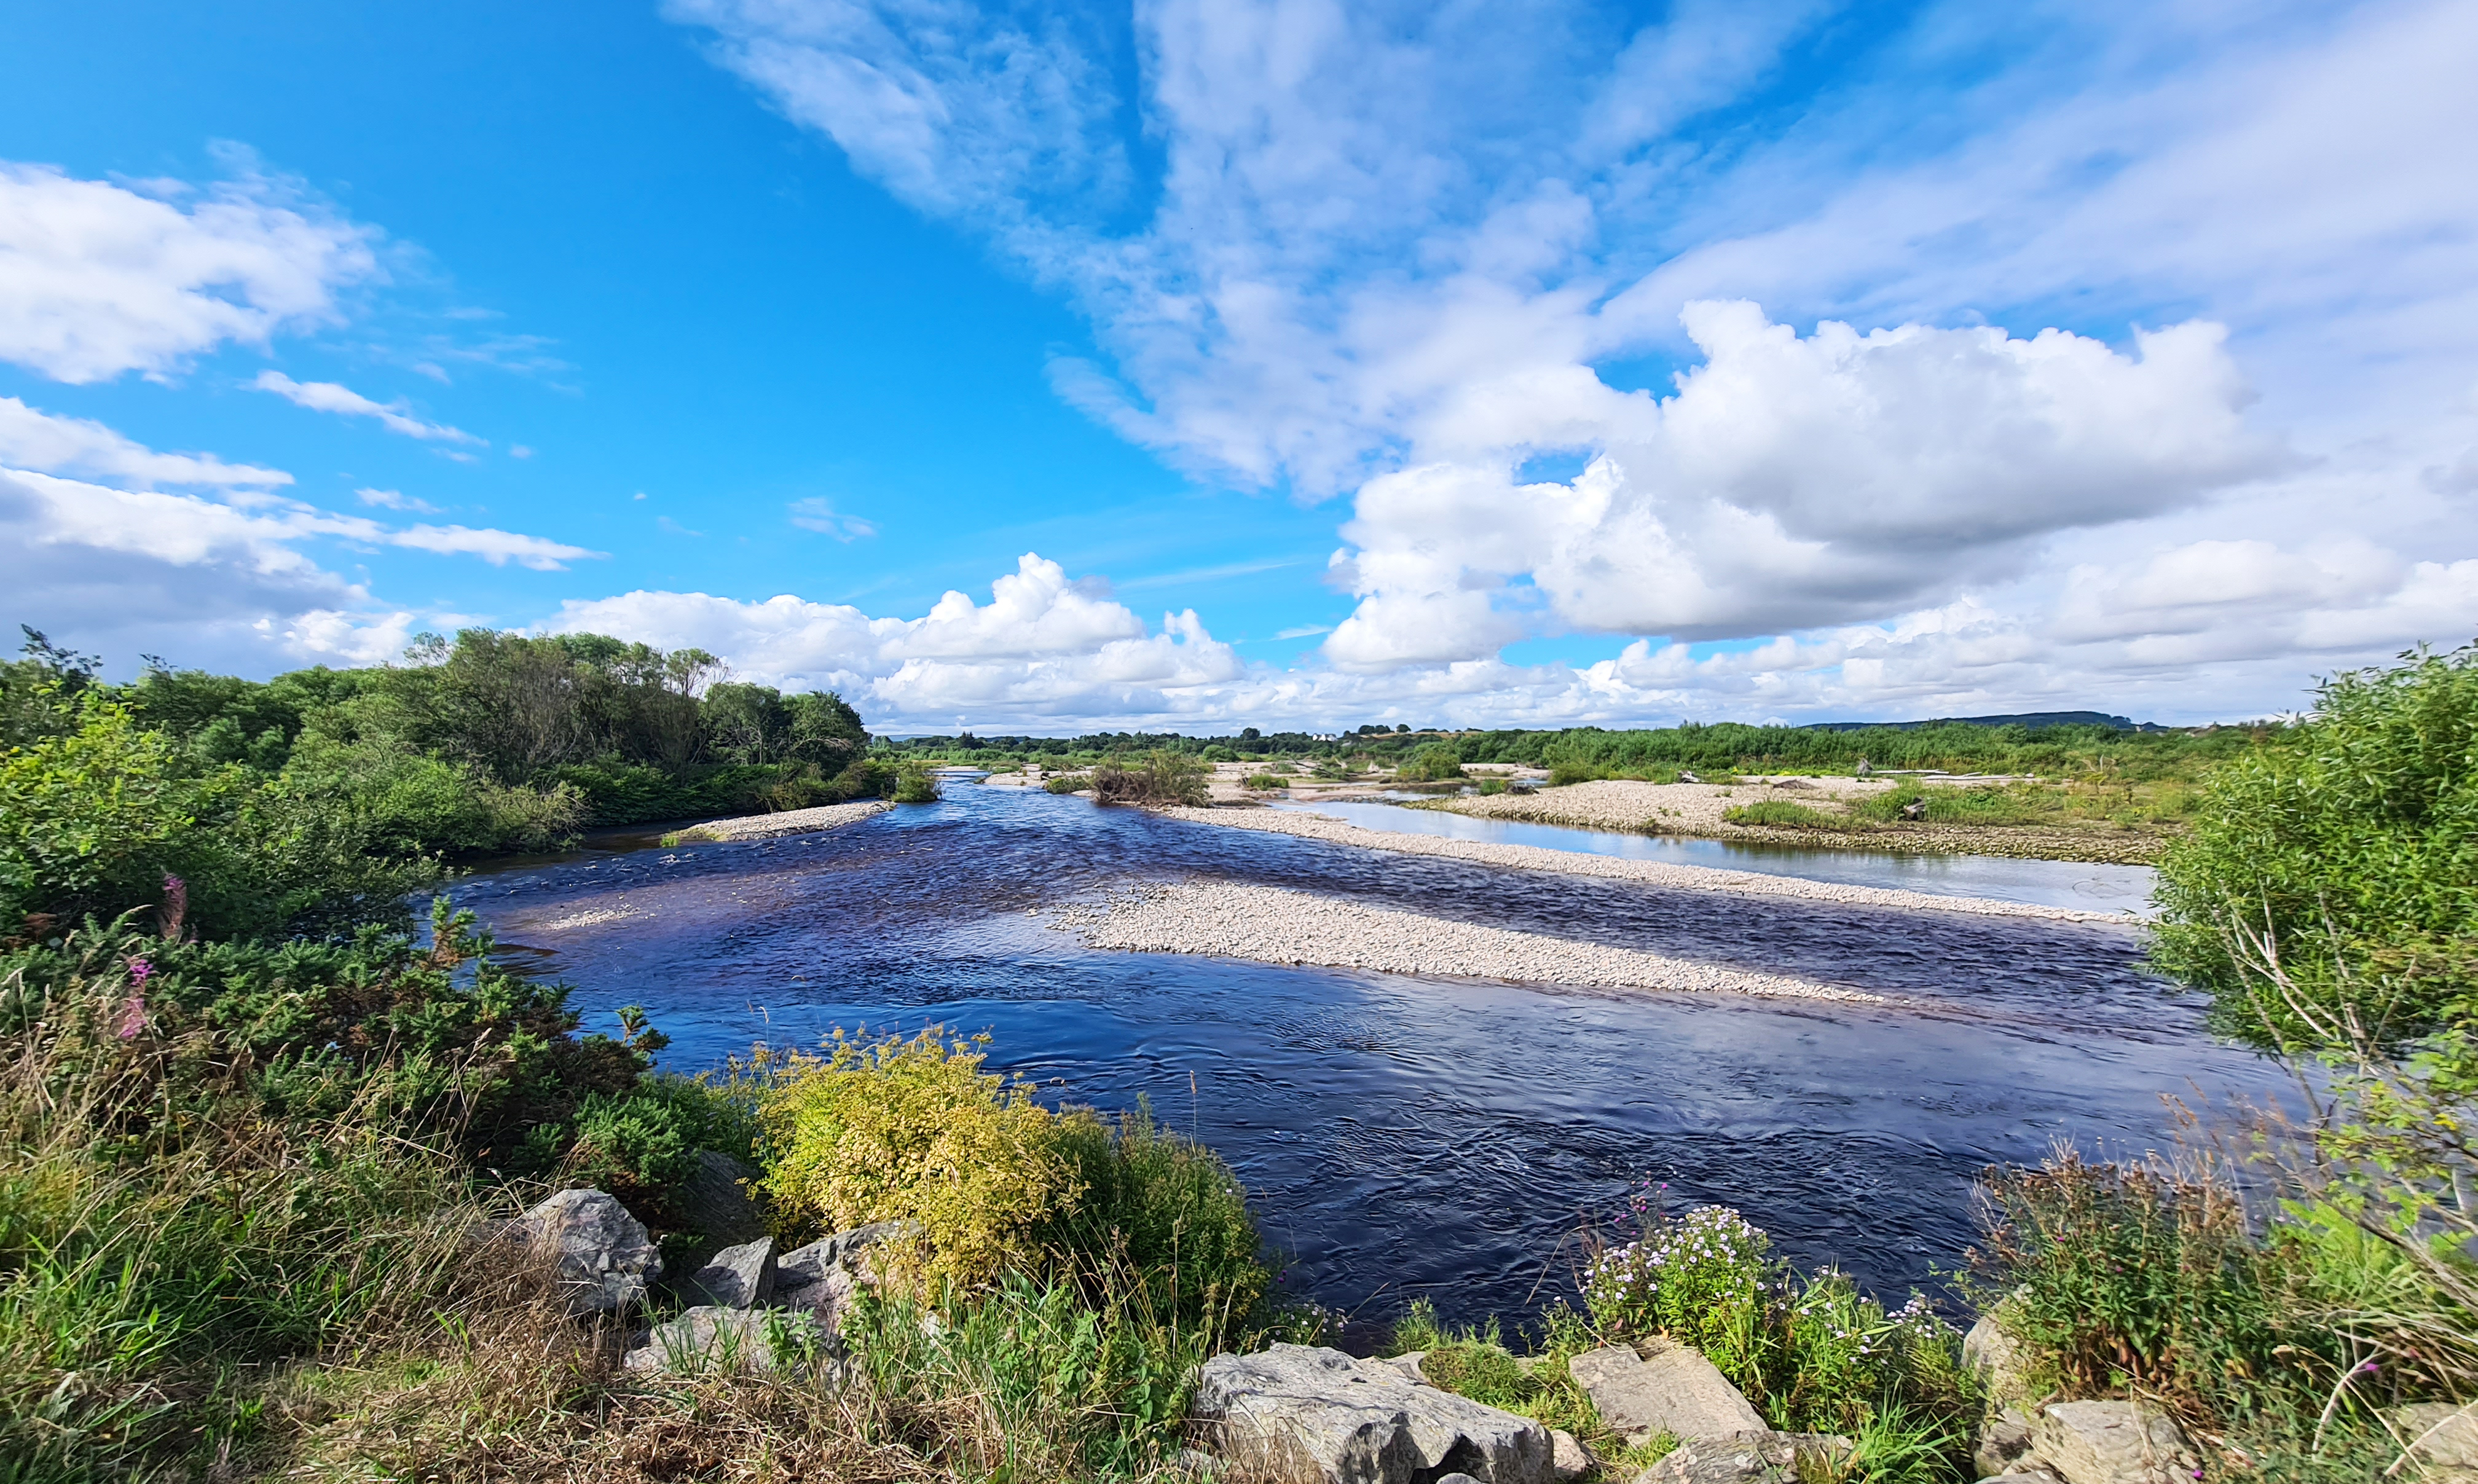 The lasts gasps of the mature River Spey as it reaches the sea